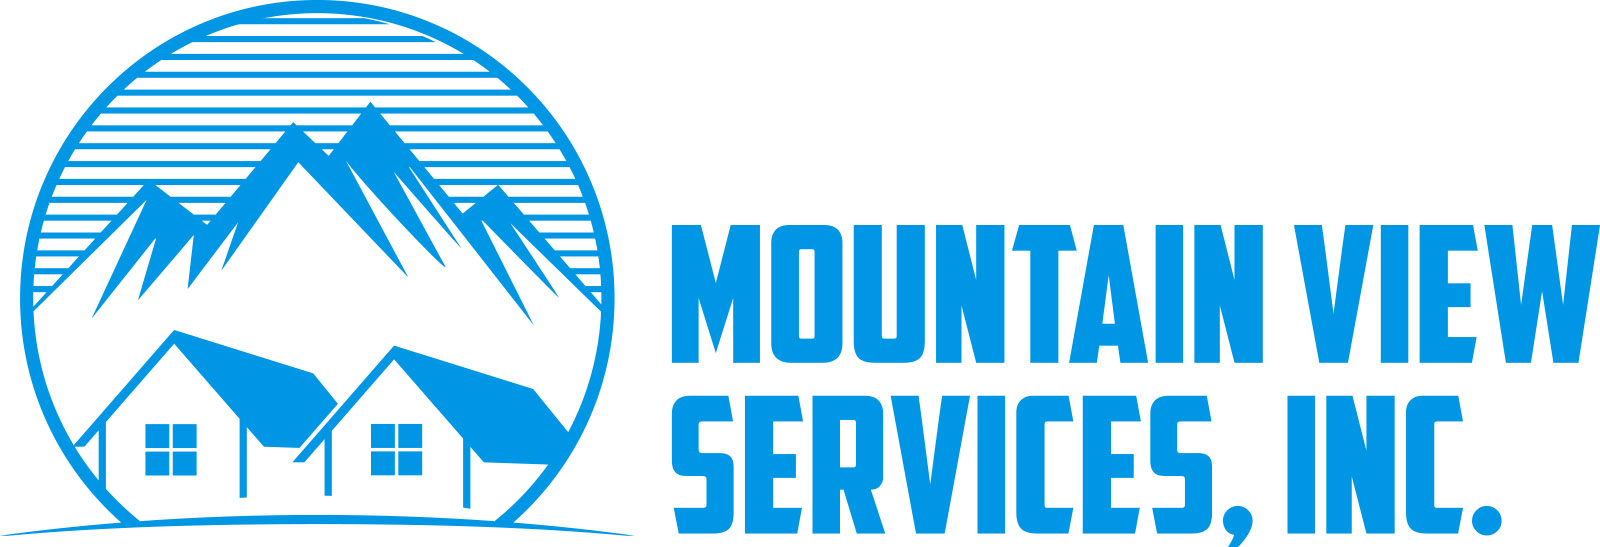 Mountain View Services